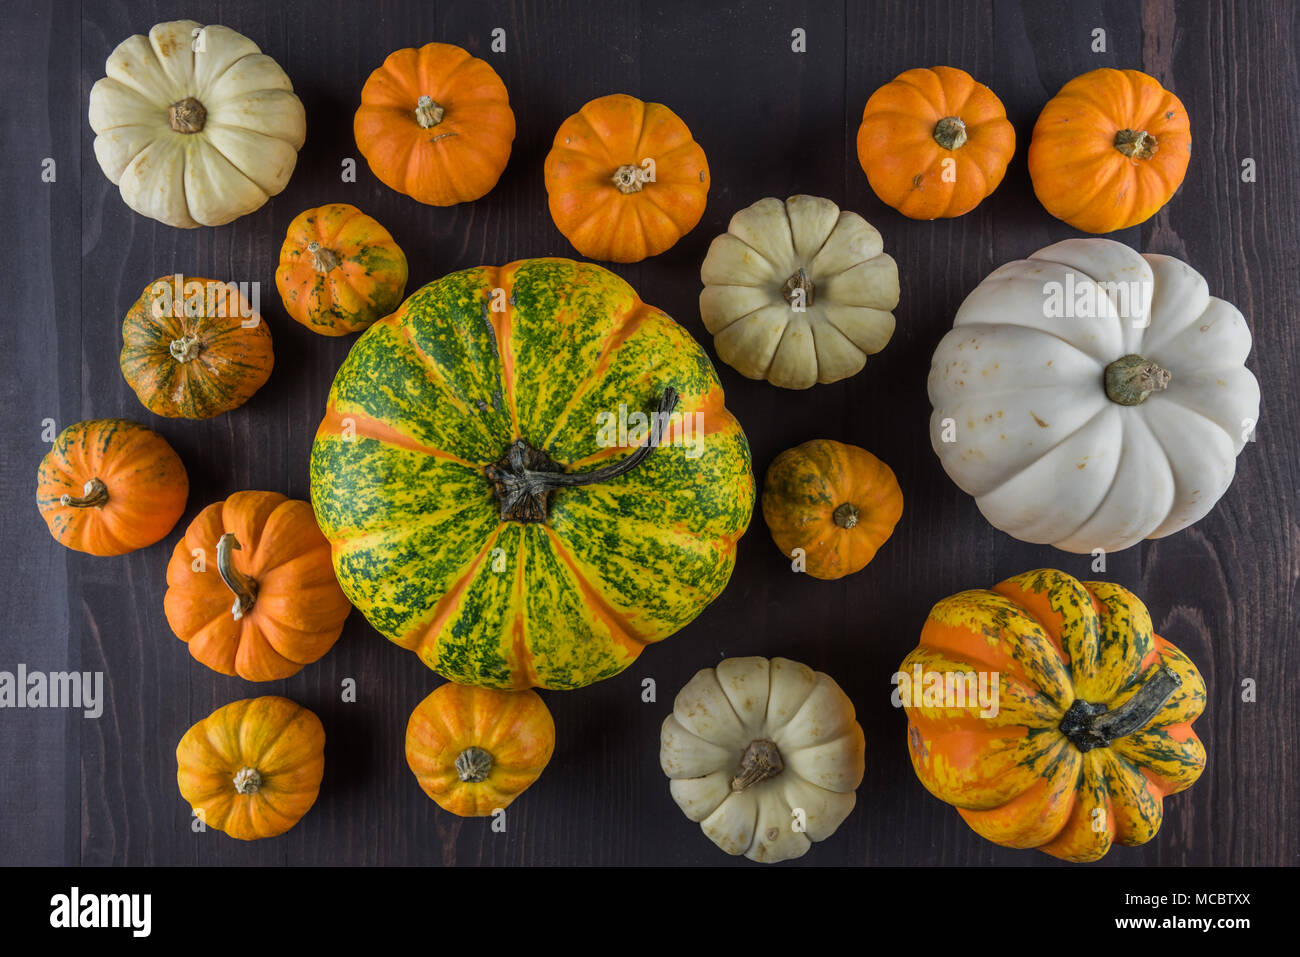 Brightly Colored Pumpkins on Dark Wood Background from above - Stock Image